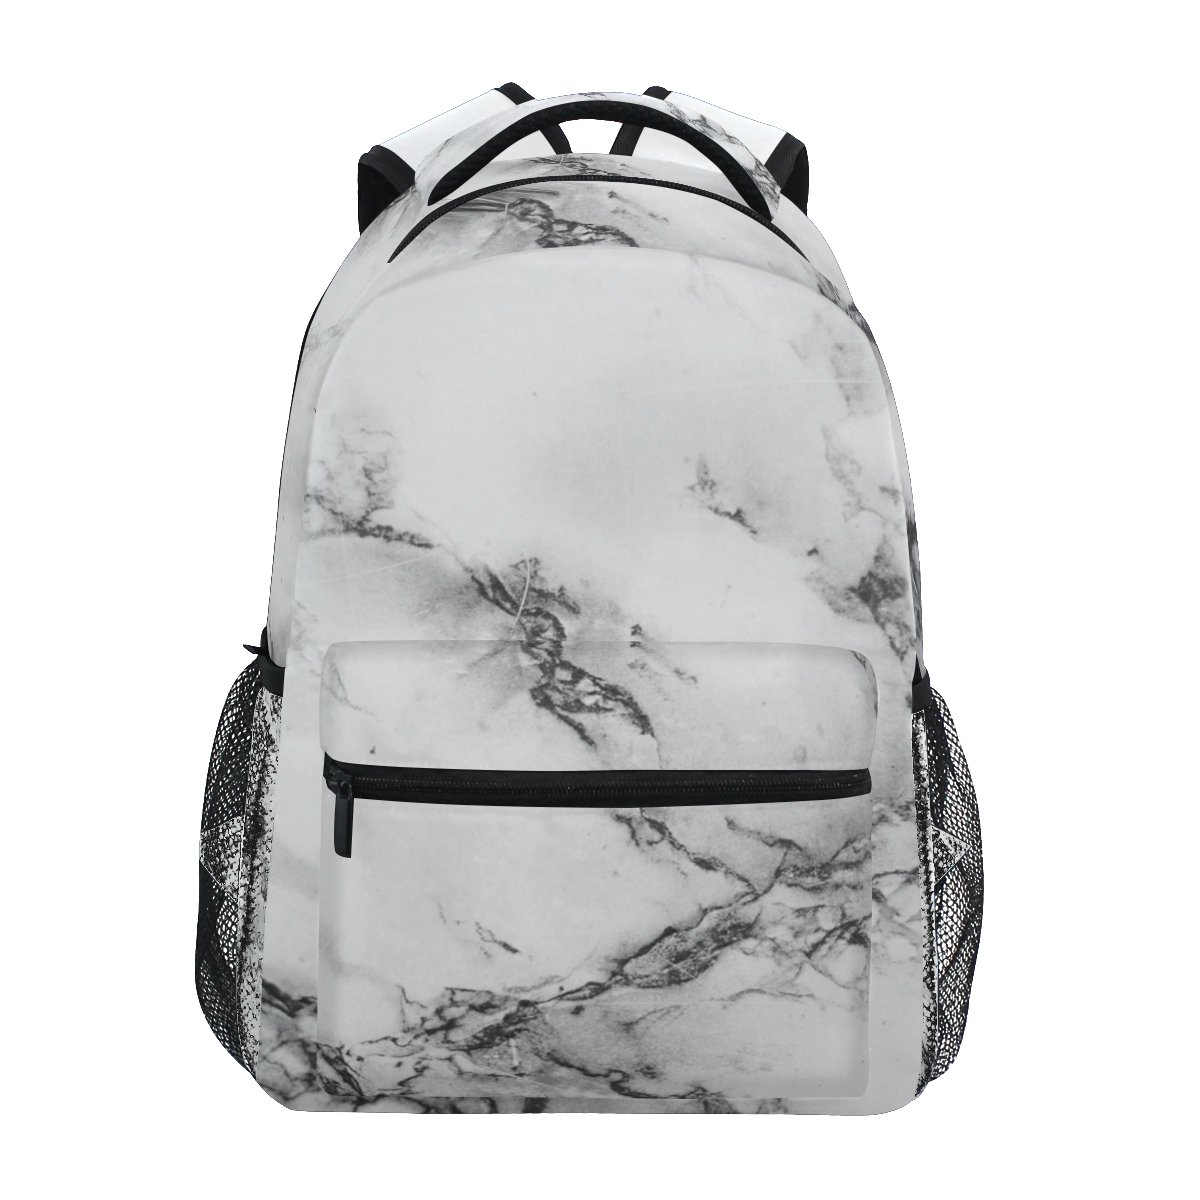 ZZKKO Black and White Marble Art Backpacks College School Book Bag Travel Hiking Camping Daypack